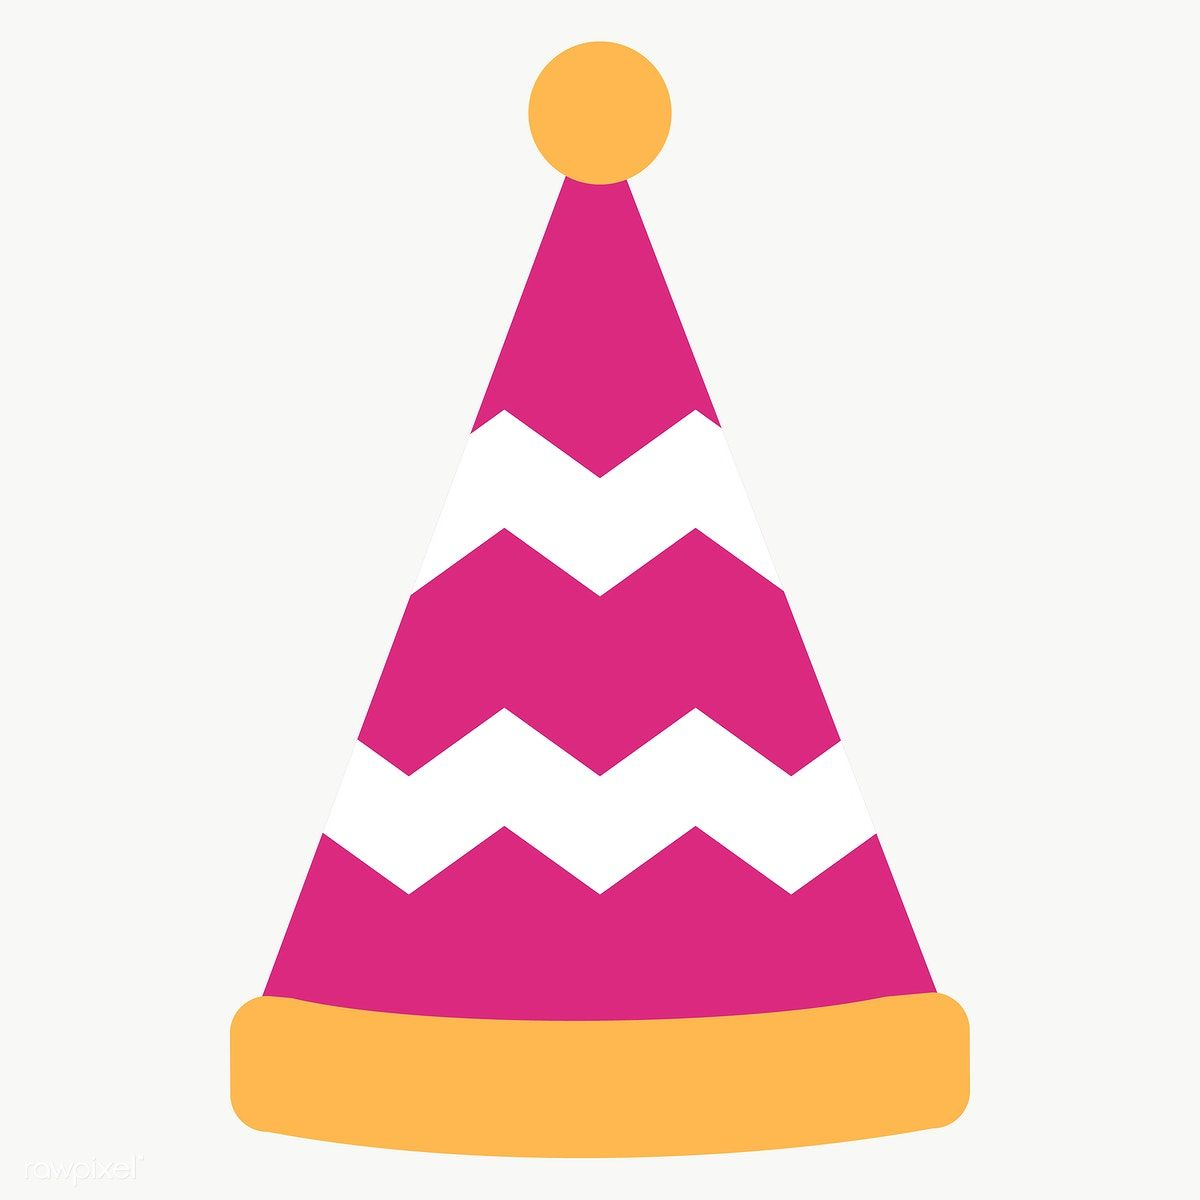 Pink Party Hat Design Element Transparent Png Free Image By Rawpixel Com Chayanit